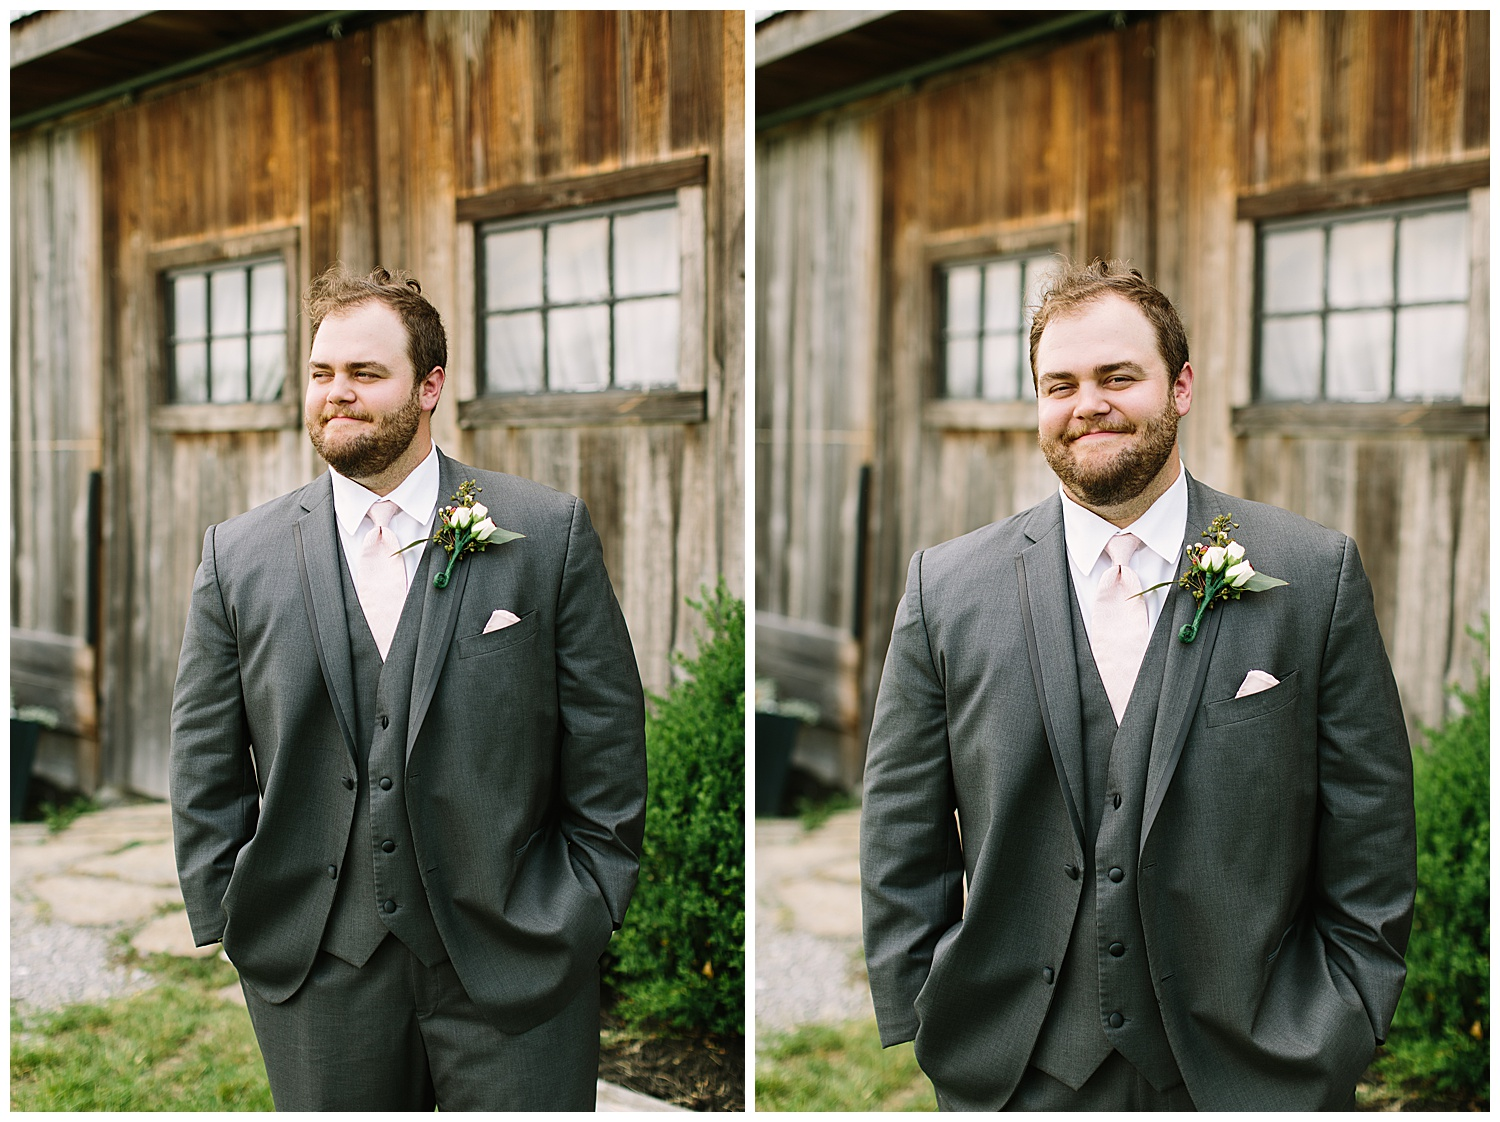 trent.and.kendra.photography.eden.springs.farmstead.shelbyville.wedding-44.jpg